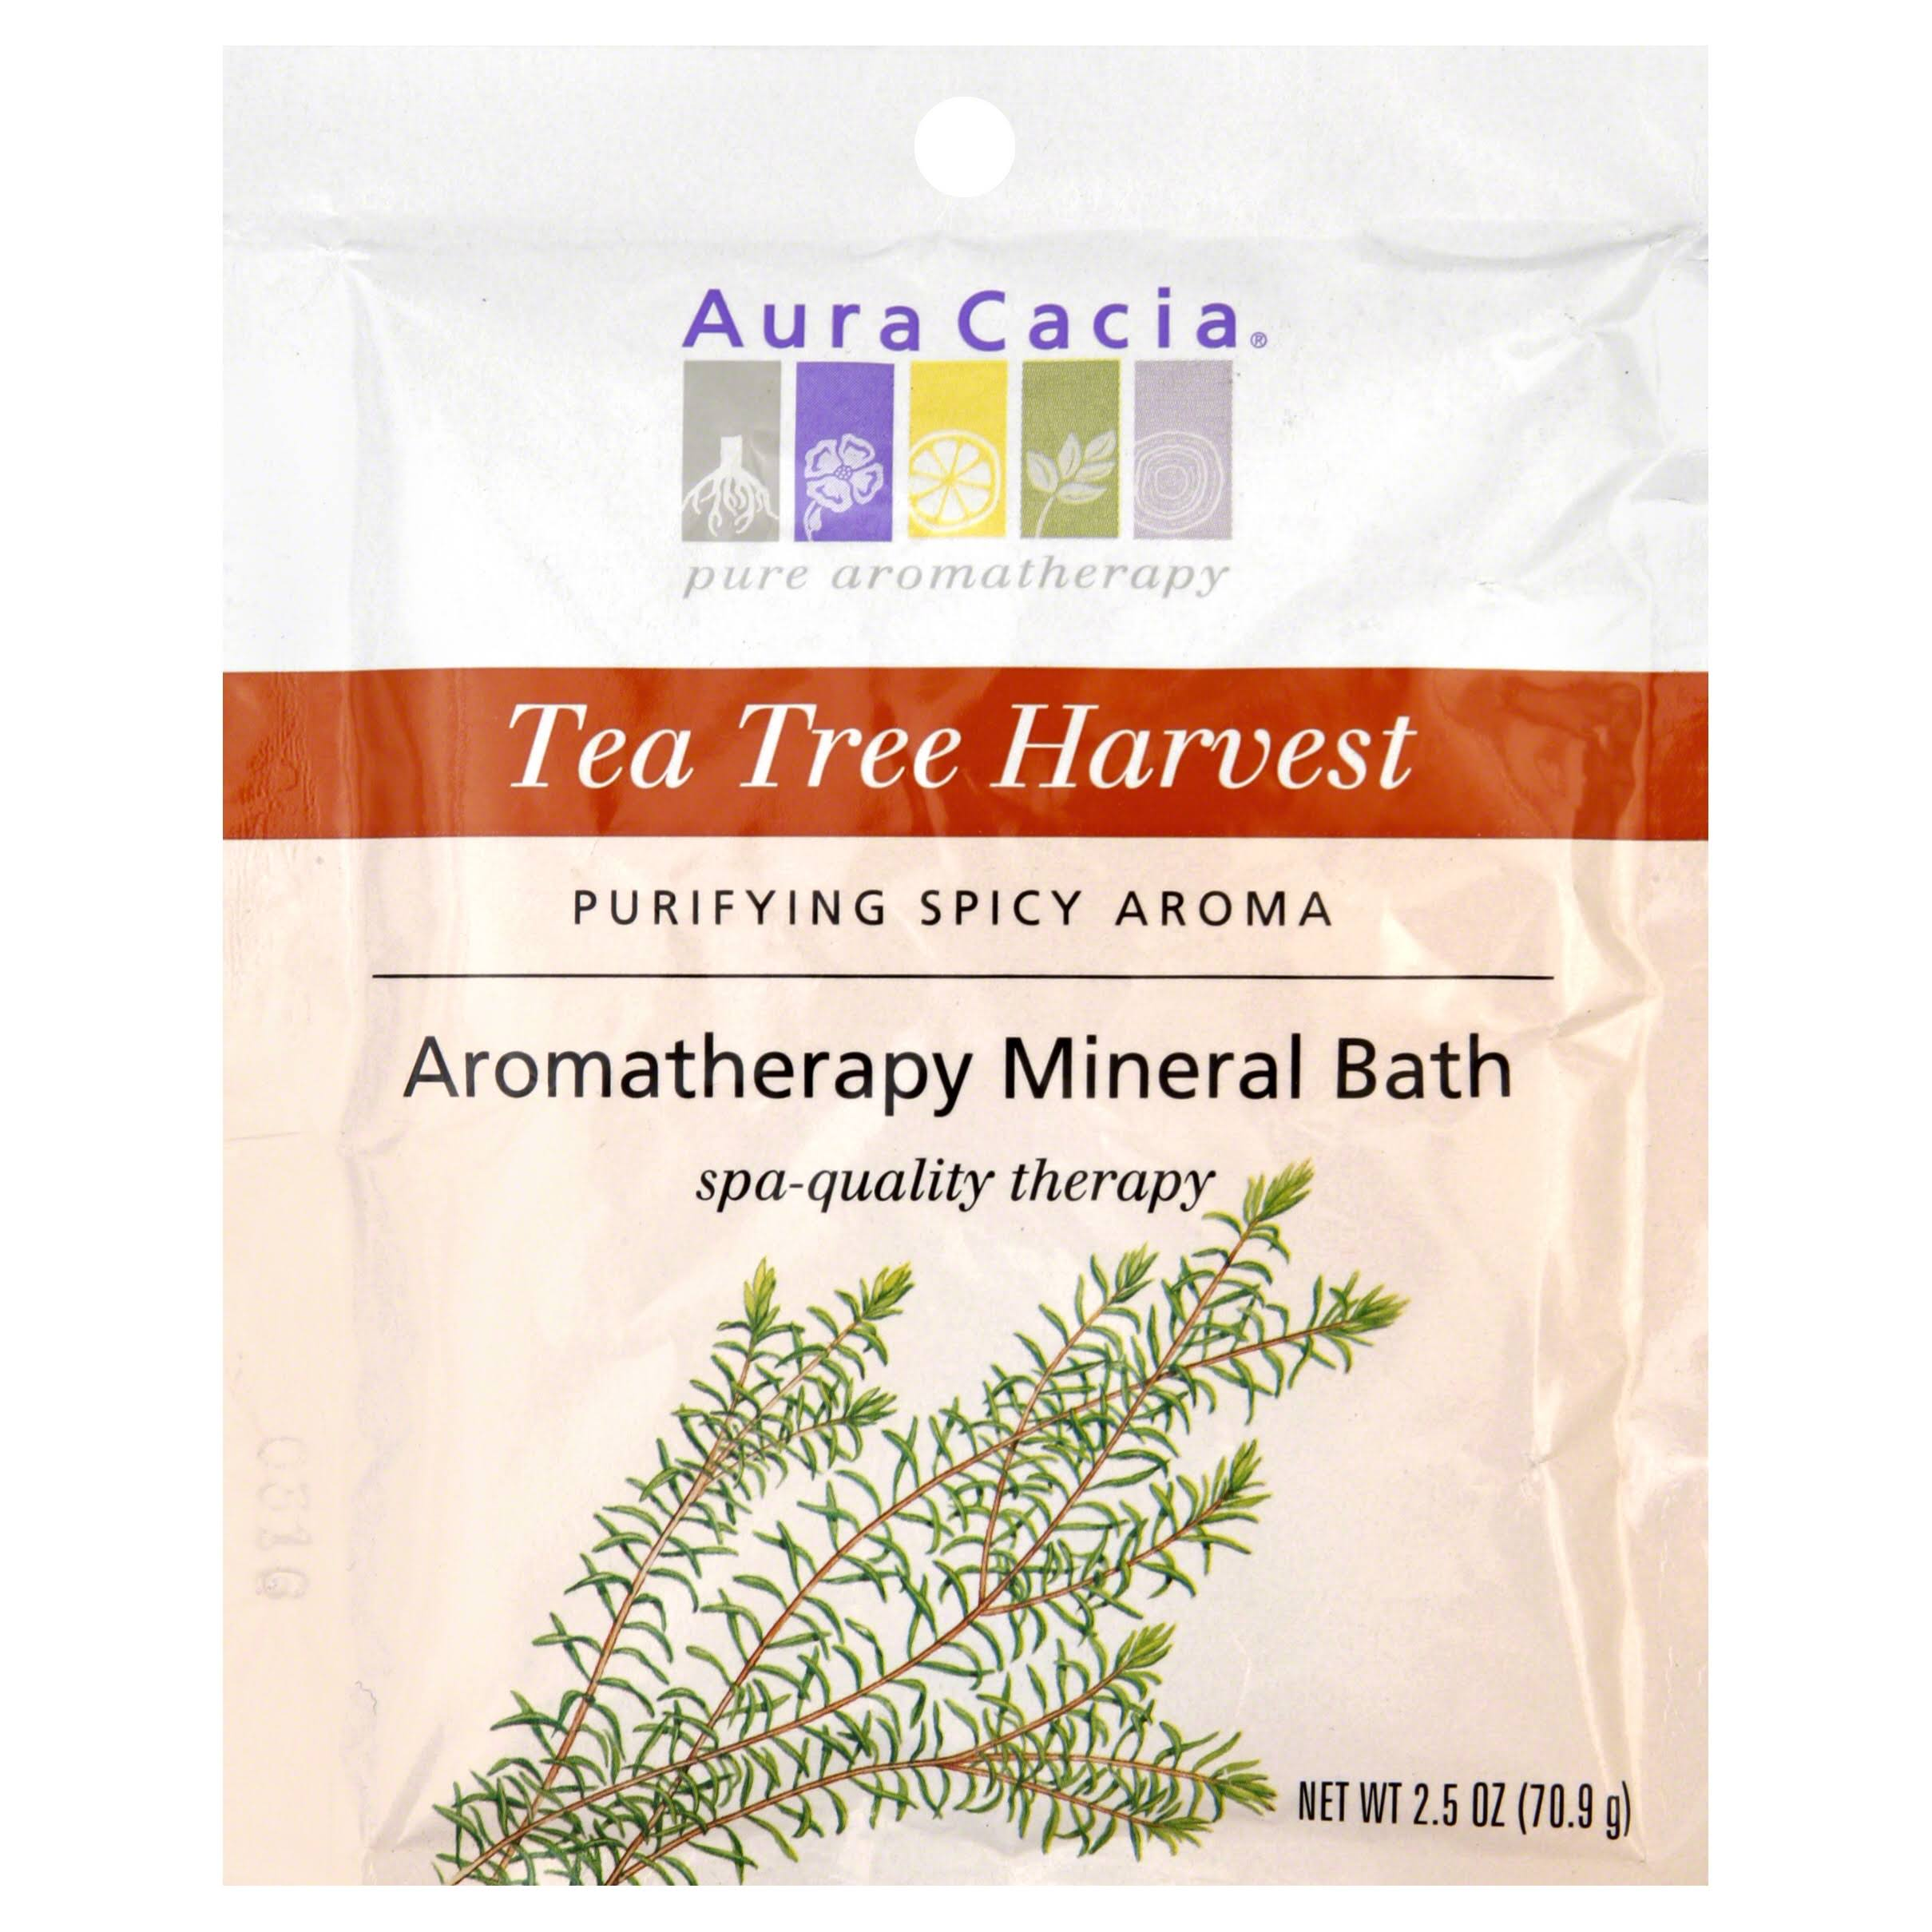 Aura Cacia Aromatherapy Mineral Bath - Tea Tree Harvest, 2.5oz